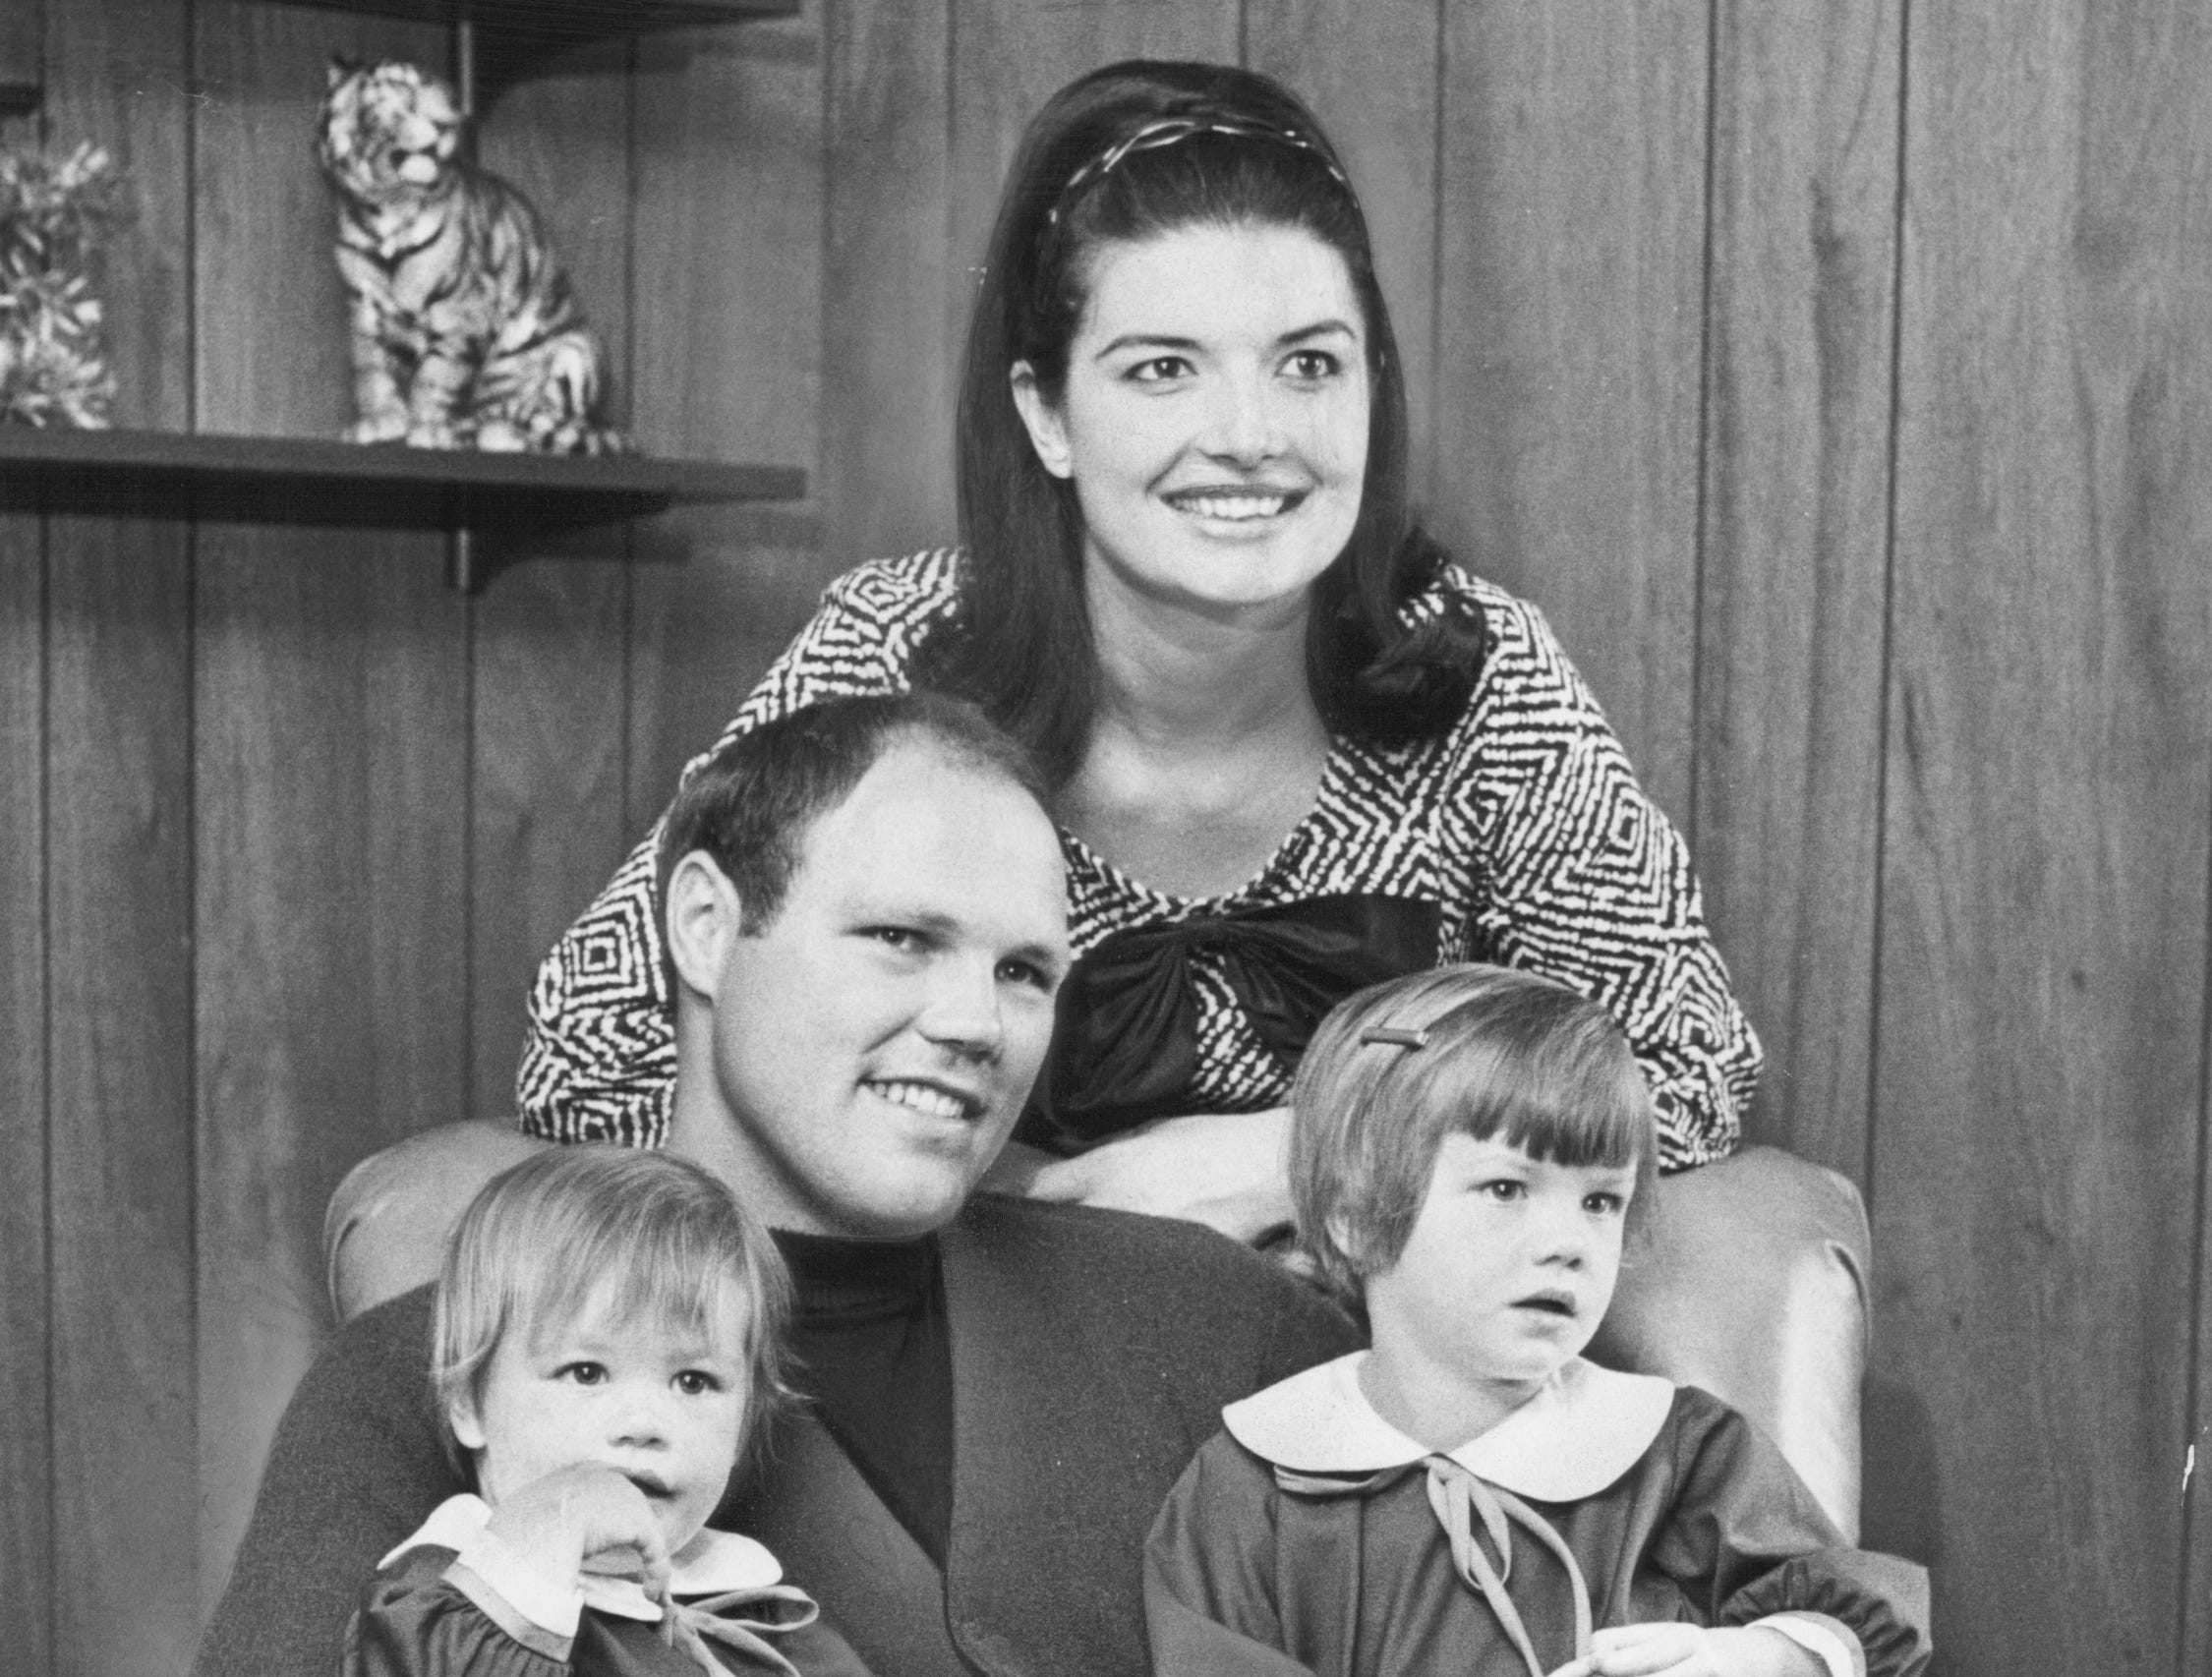 Bill and wife Pat with daughters